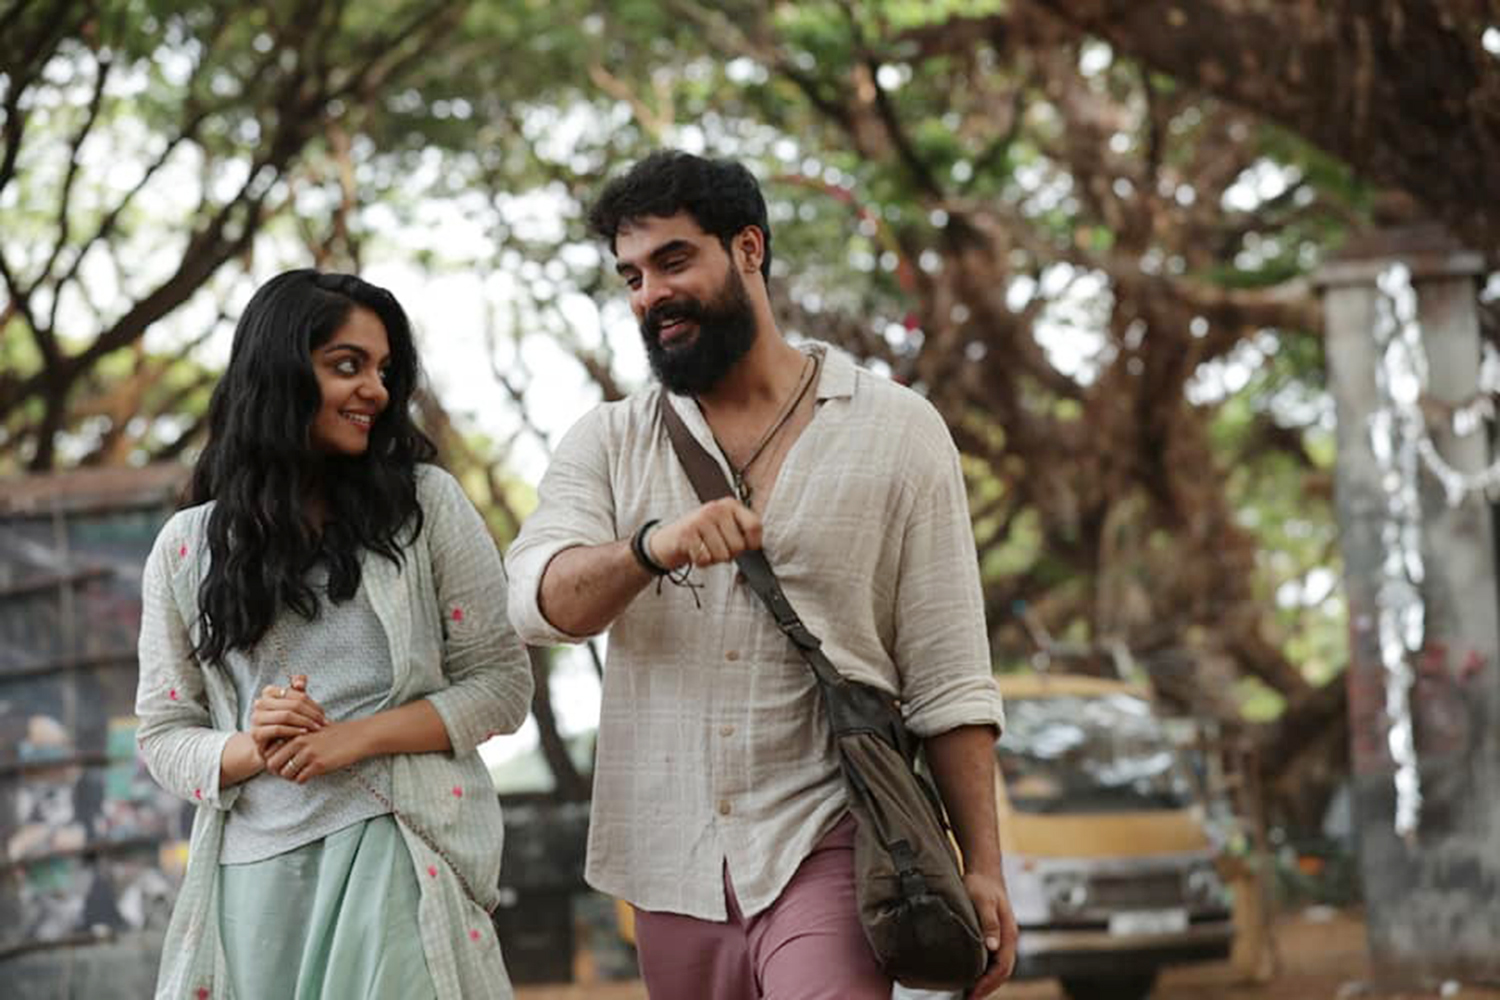 luca review,luca movie review,luca malayalam movie review,tovino thomas luca review,tovino thomas new film,luca kerala box office report,luca movie hit or flop,ahaana krishna,ahaana krishna new movie,tovino thomas and ahaana krishna in luca,luca movie stills,luca movie poster